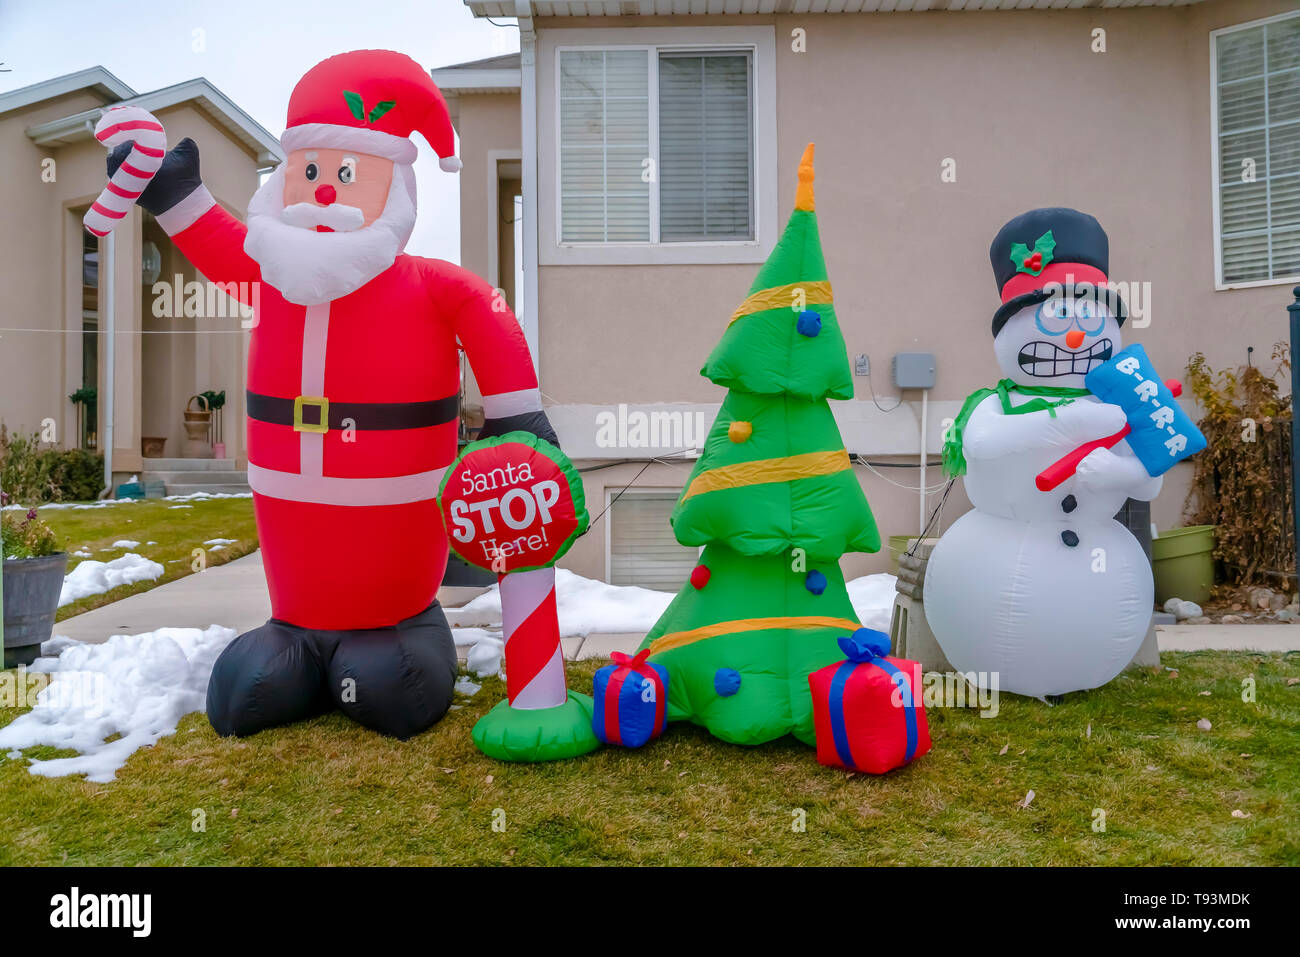 Inflatable Christmas Decorations On A Grassy Yard With Snow In